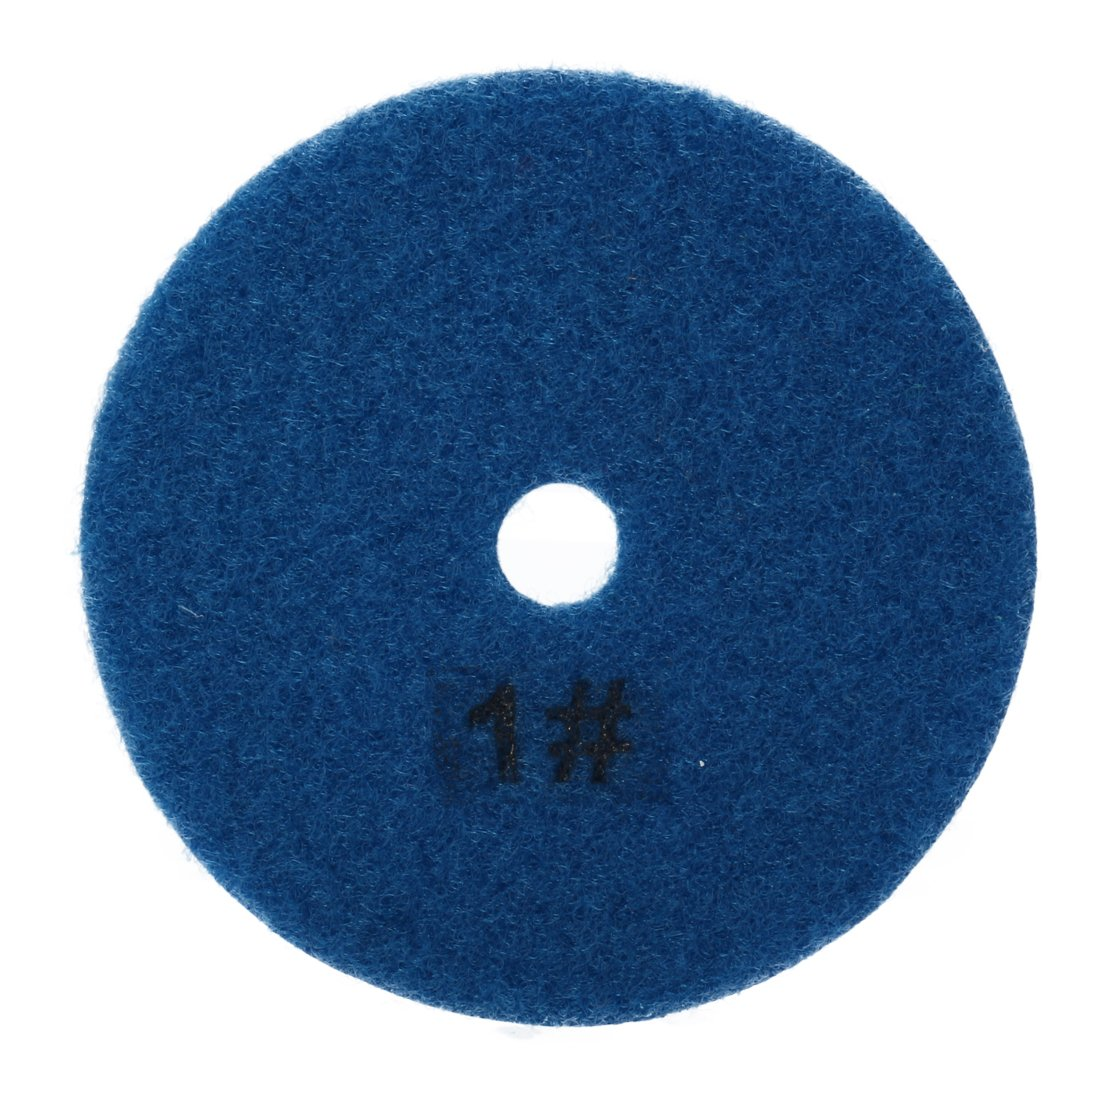 uxcell 4-inch M10 Diamond Dry Polishing Pad Grit 150 7PCS for Sanding Marble Granite Stone by uxcell (Image #3)